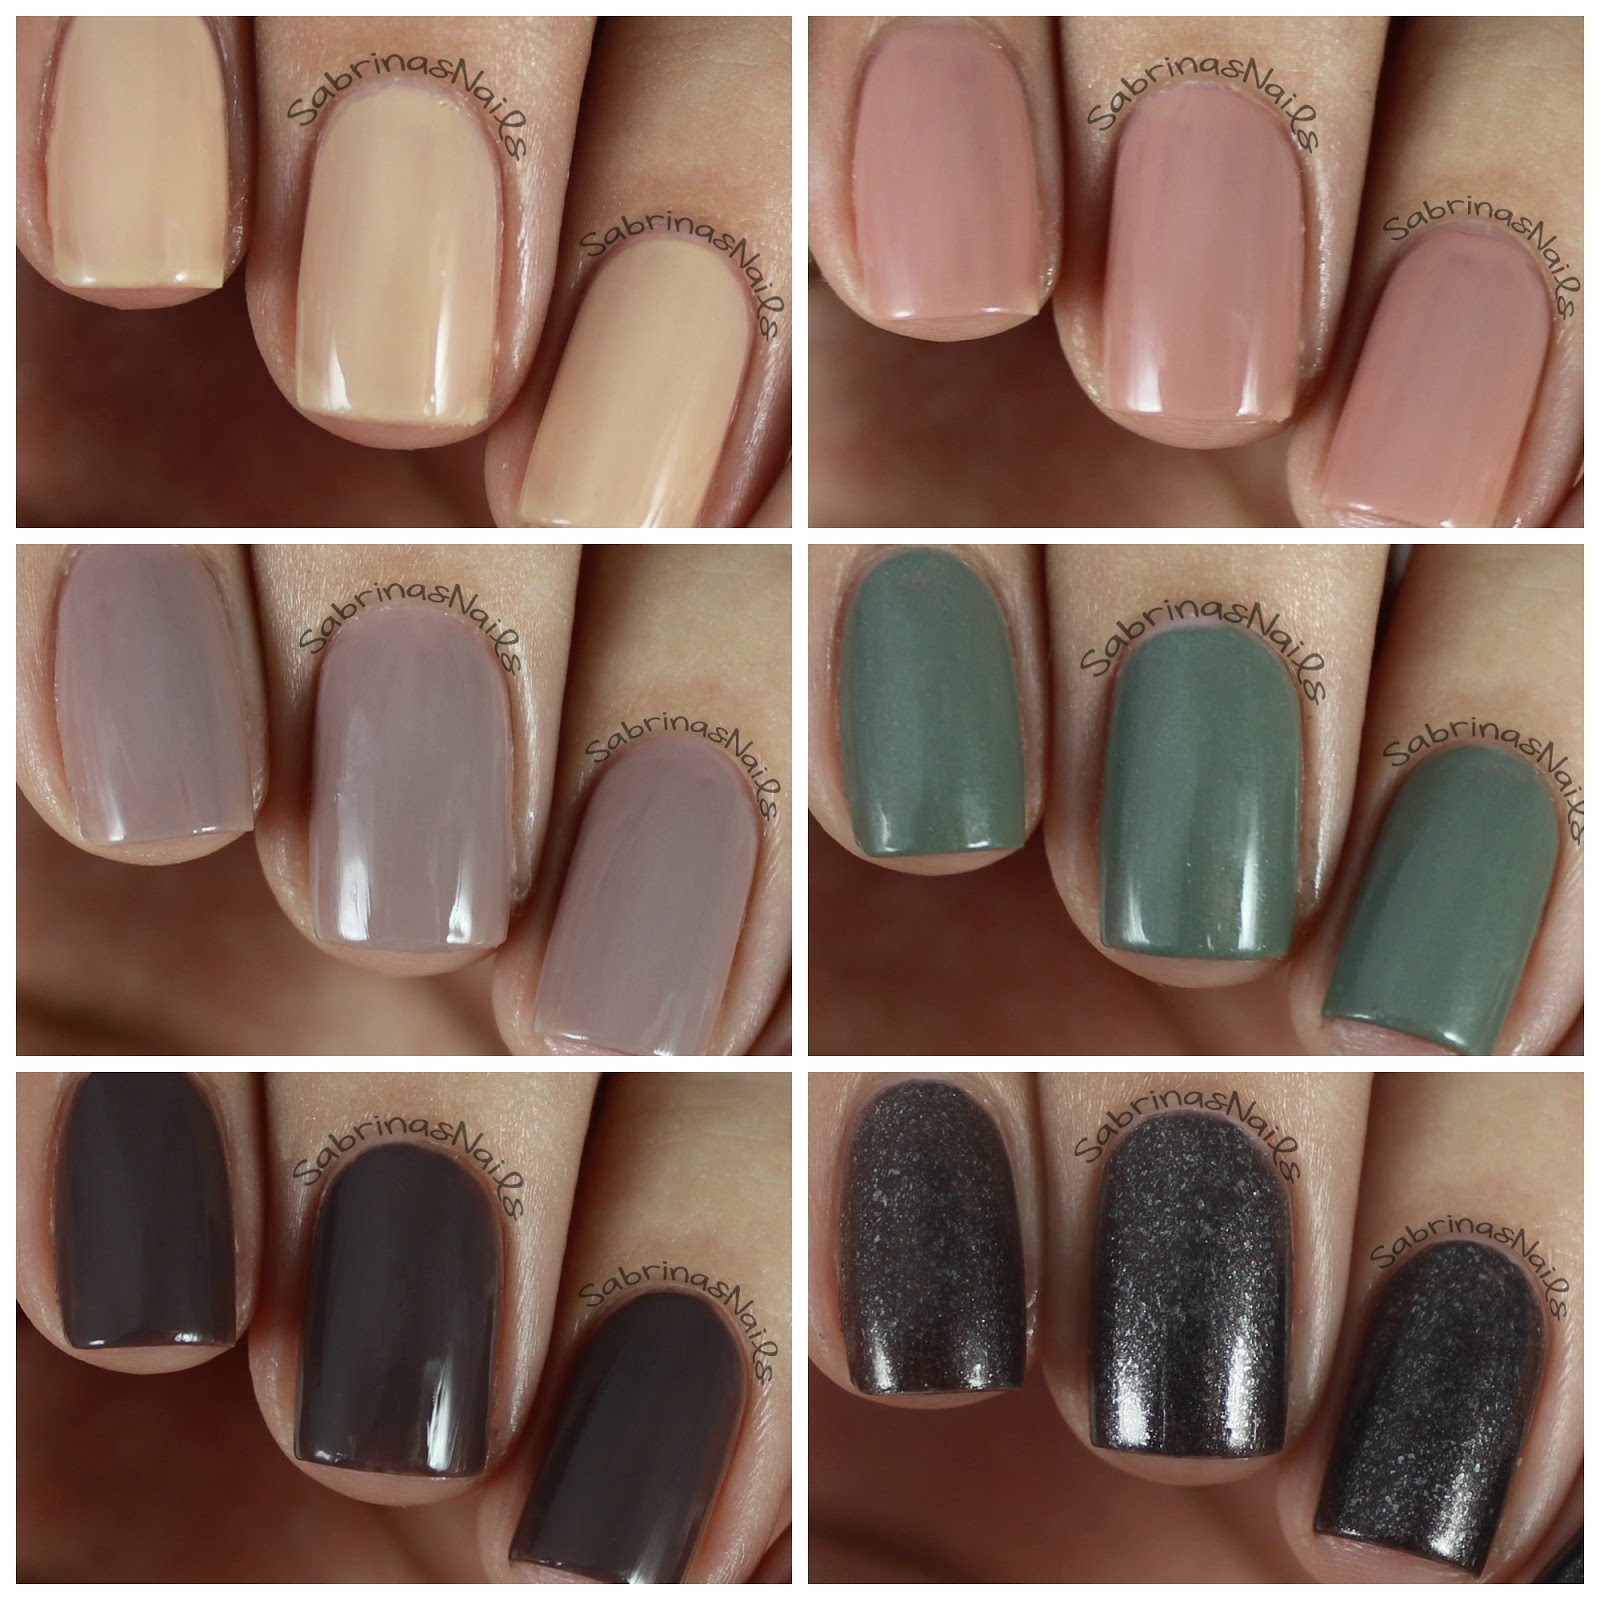 Precision Nail Lacquer Polishes Are All Eco Friendly 3 Free And Cruelty Of My Swatches Shown Without Base Coat One Top